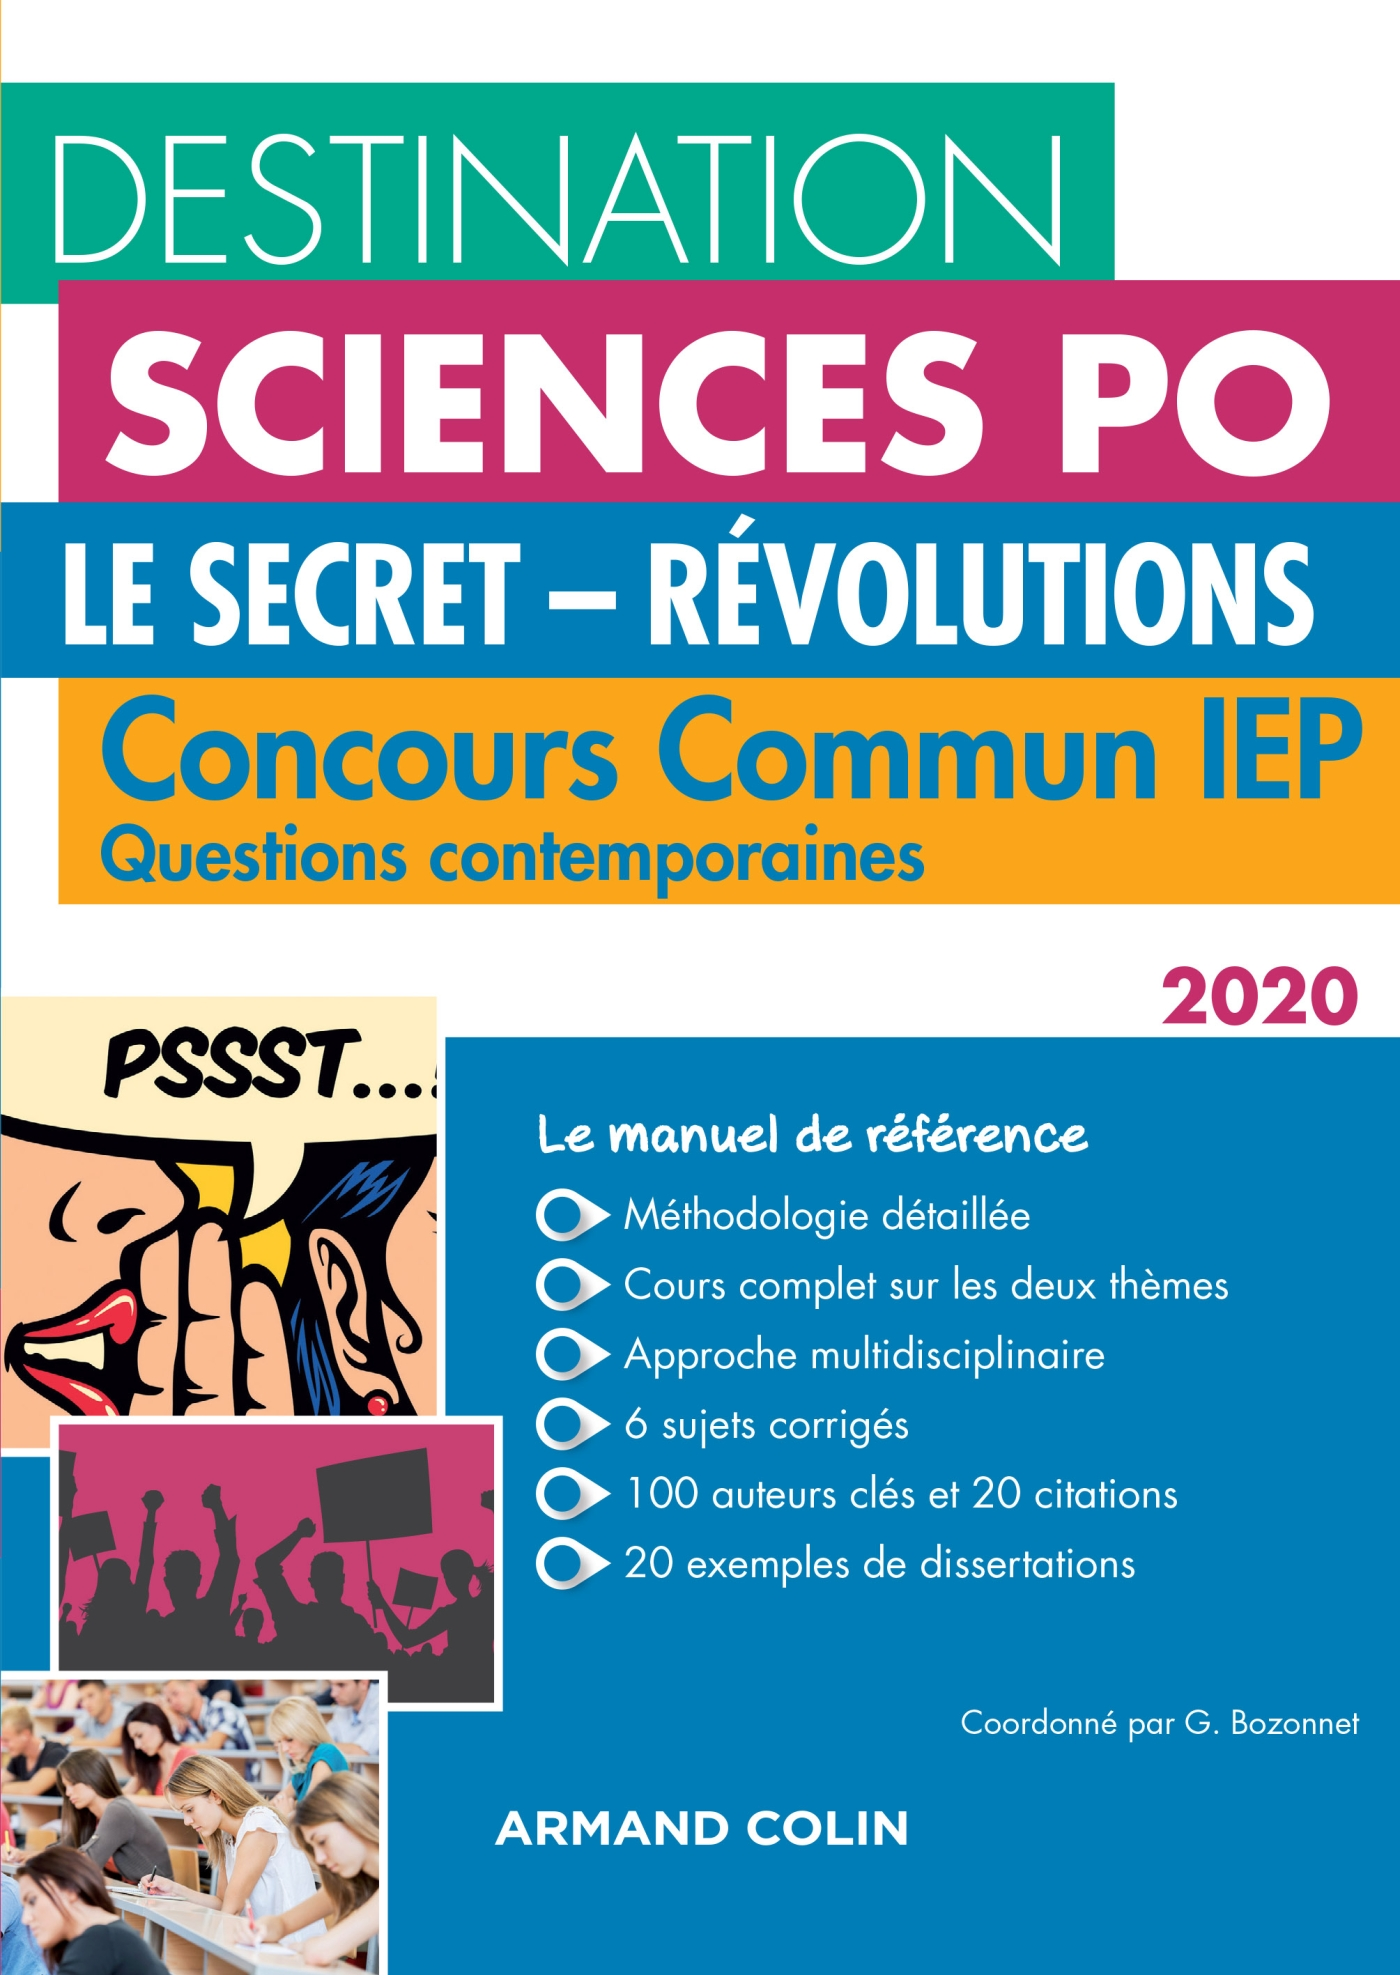 Destination Sciences Po Questions contemporaines 2020 - Le secret - Révolutions